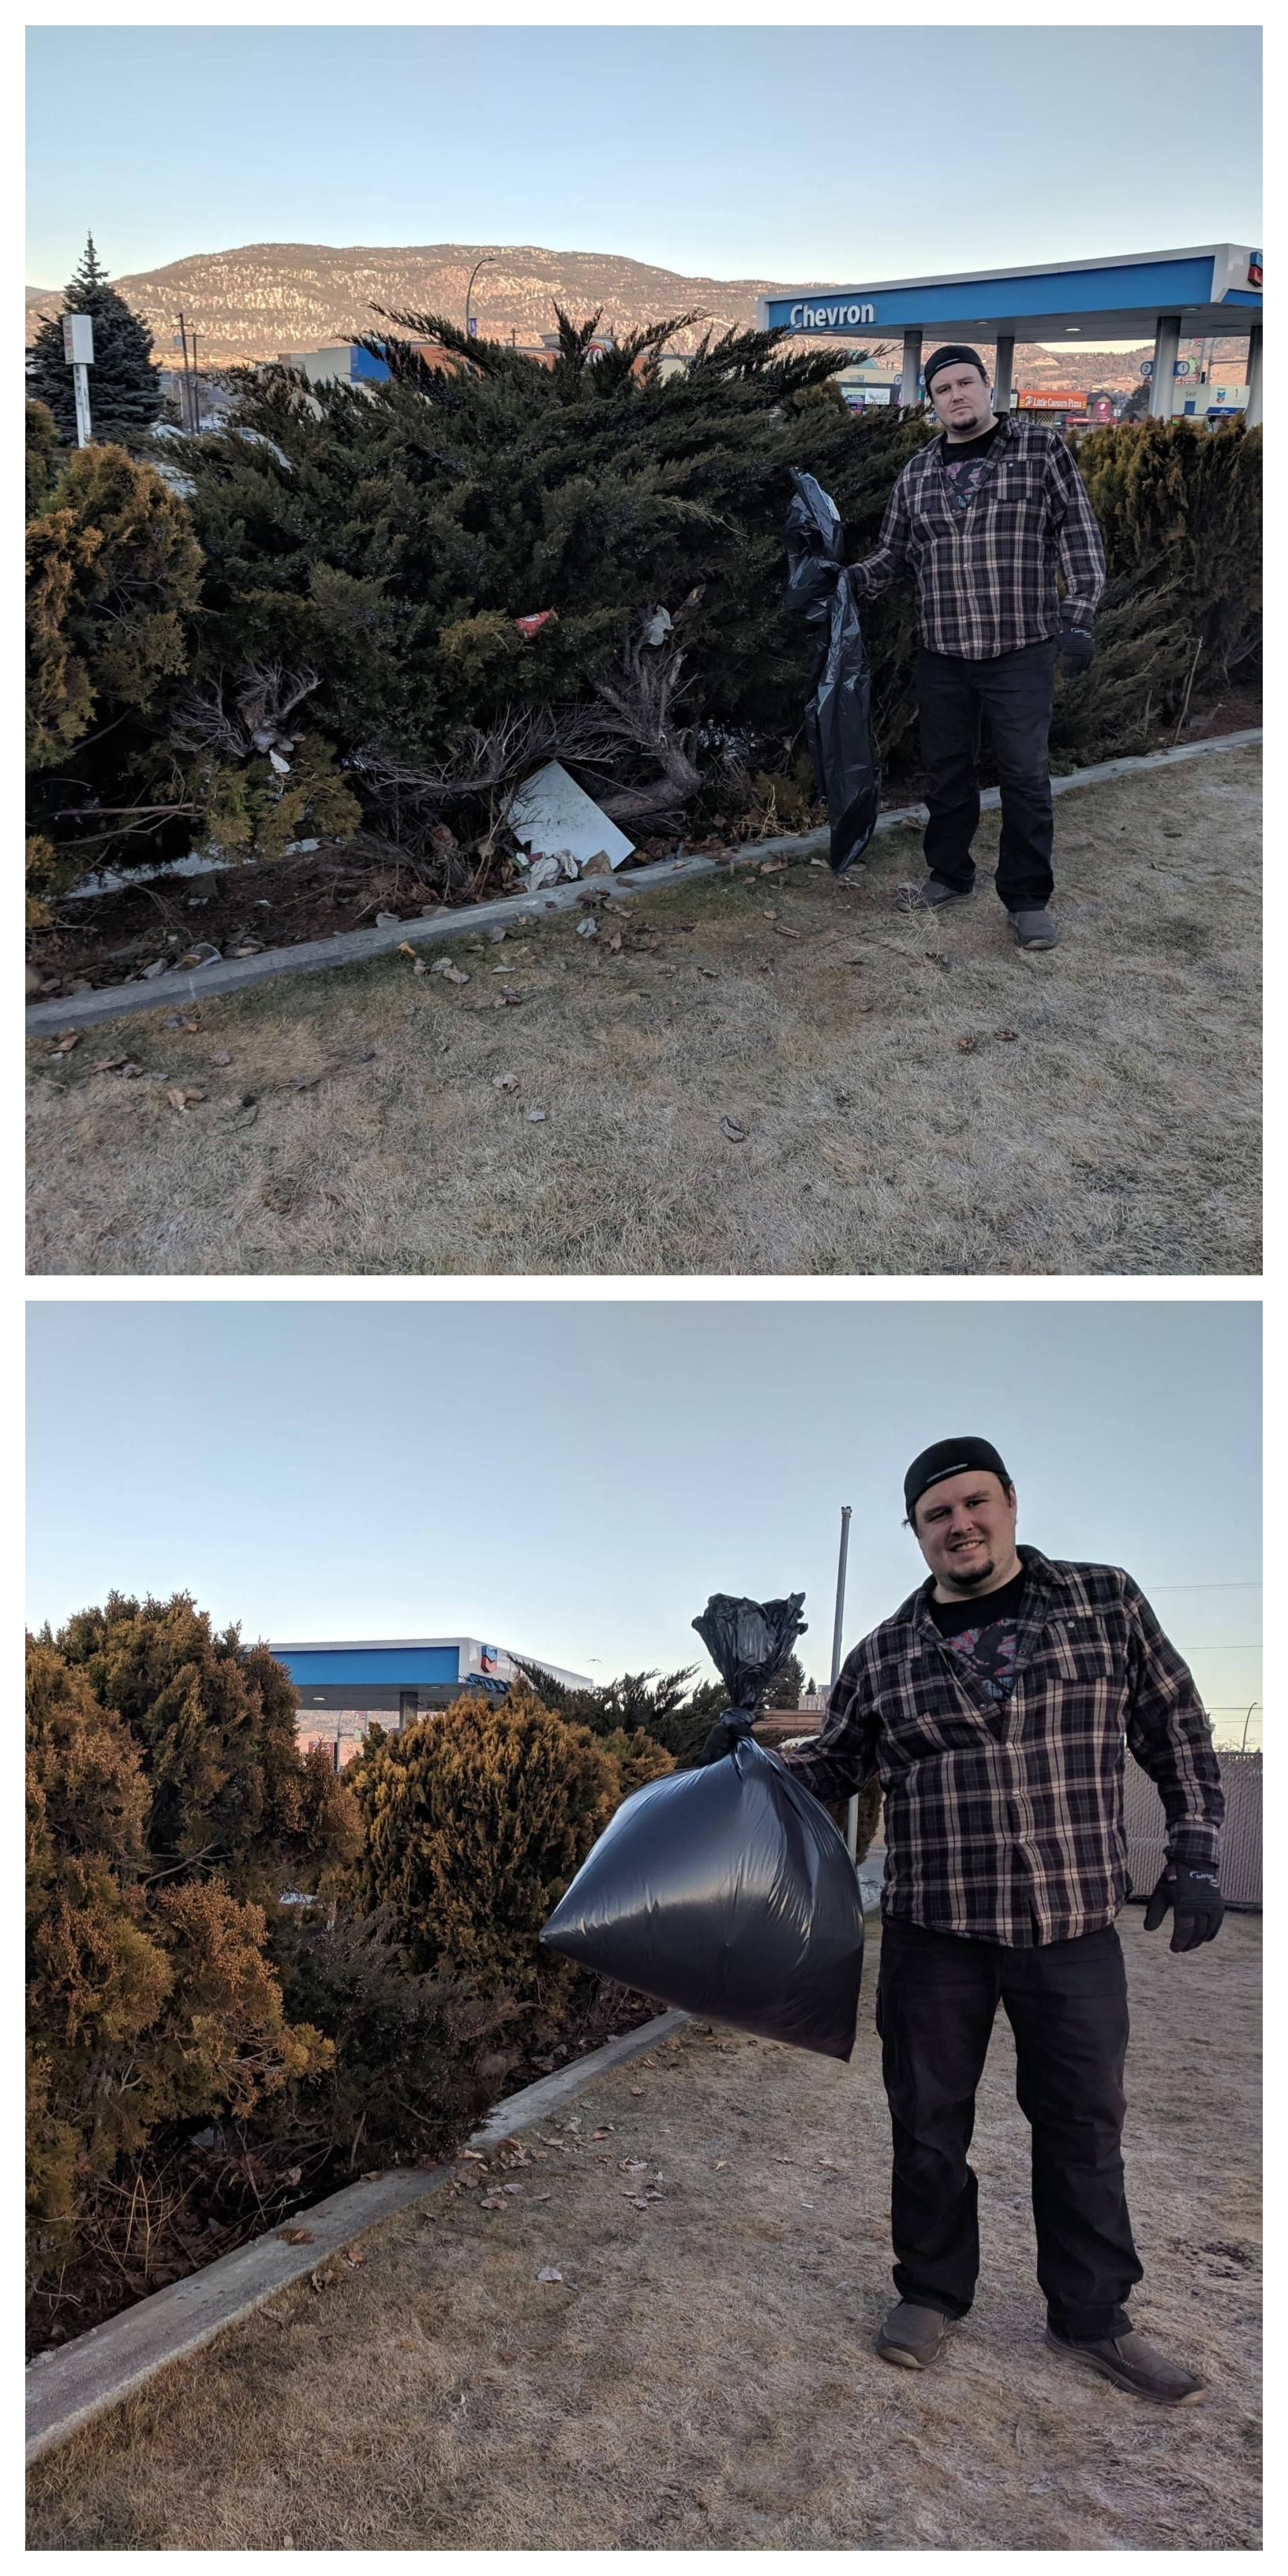 Trashtag Challenge. Let's keep this one alive! Awsome